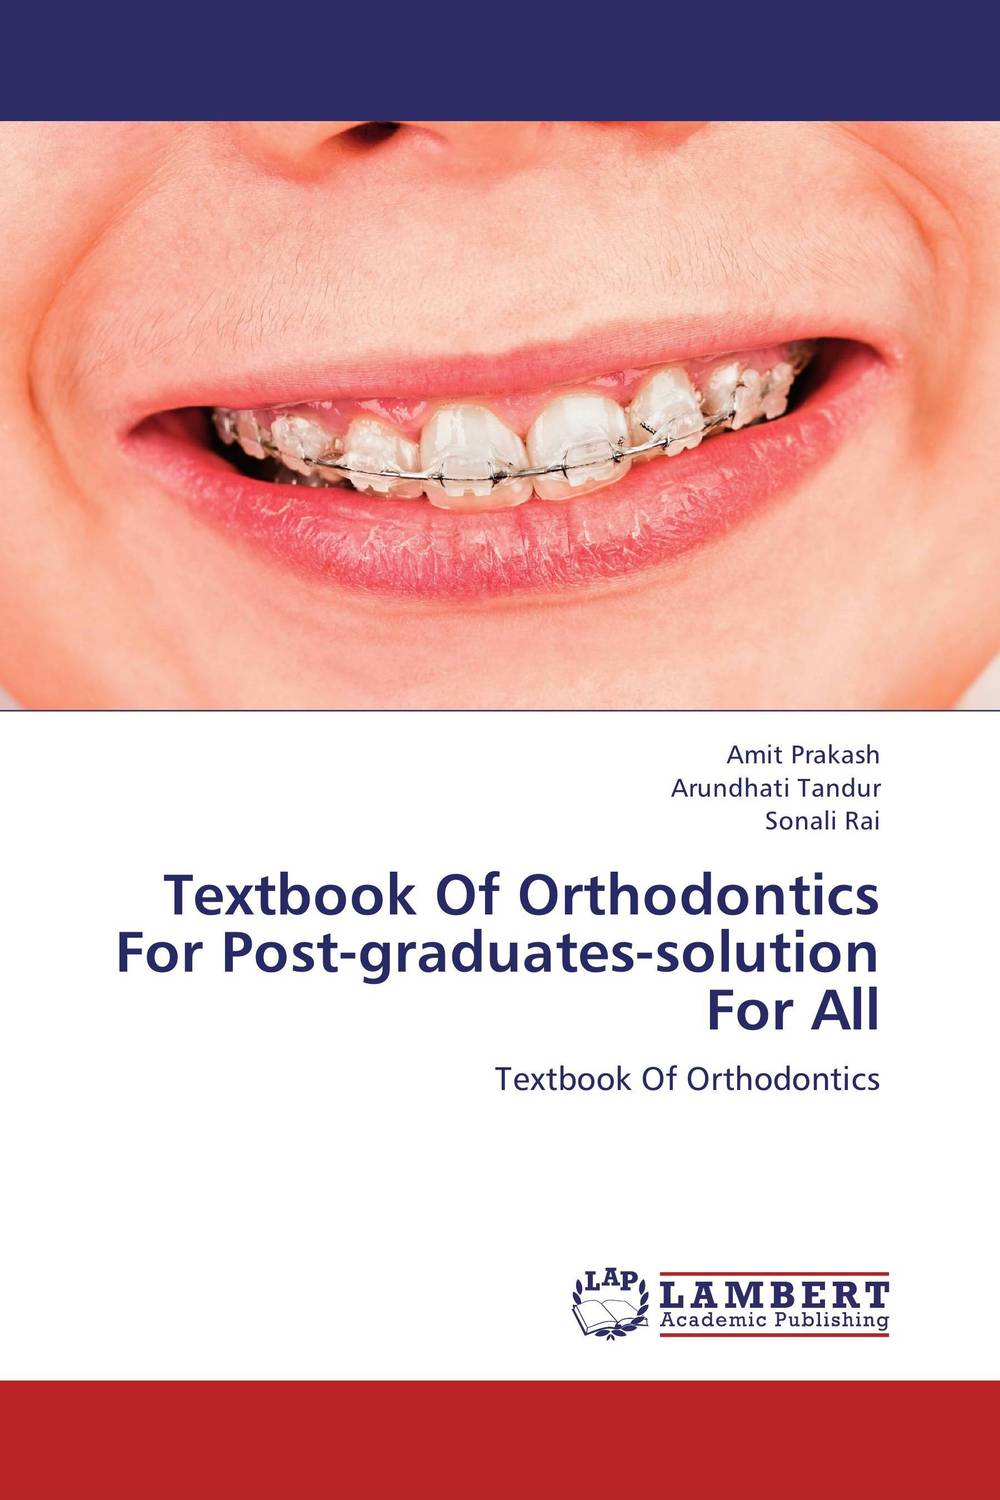 Textbook Of Orthodontics For Post-graduates-solution For All a concise textbook of community pharmacy